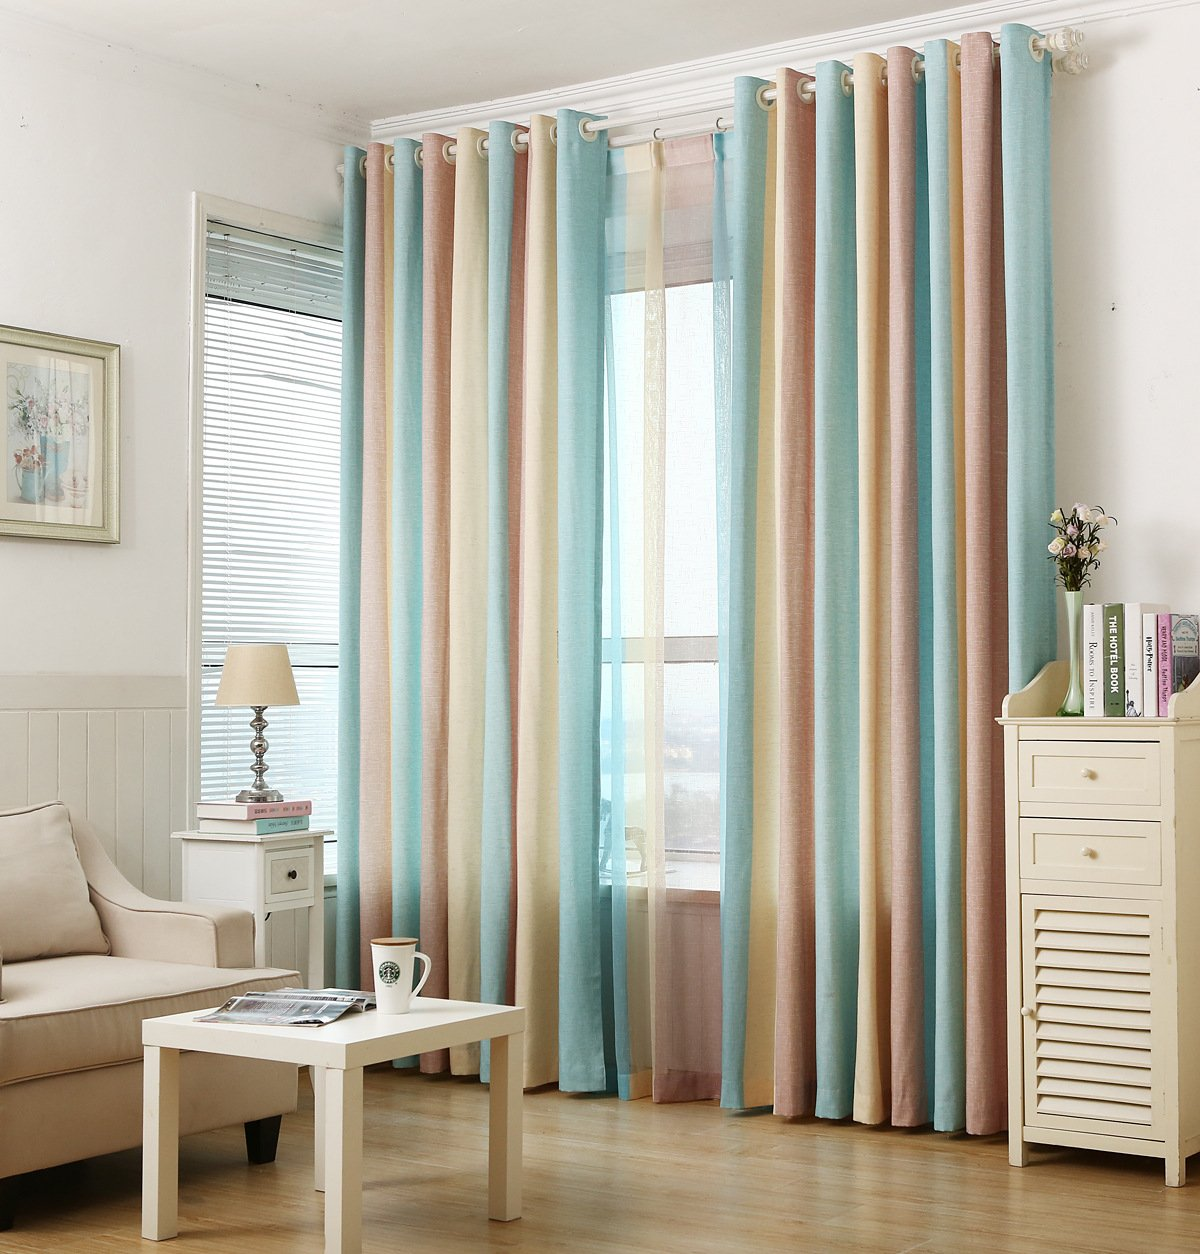 ZWB Fashionable Rod Pocket Striped Window Sheer Curtains with Wide Blue Yellow and Brown Stripe